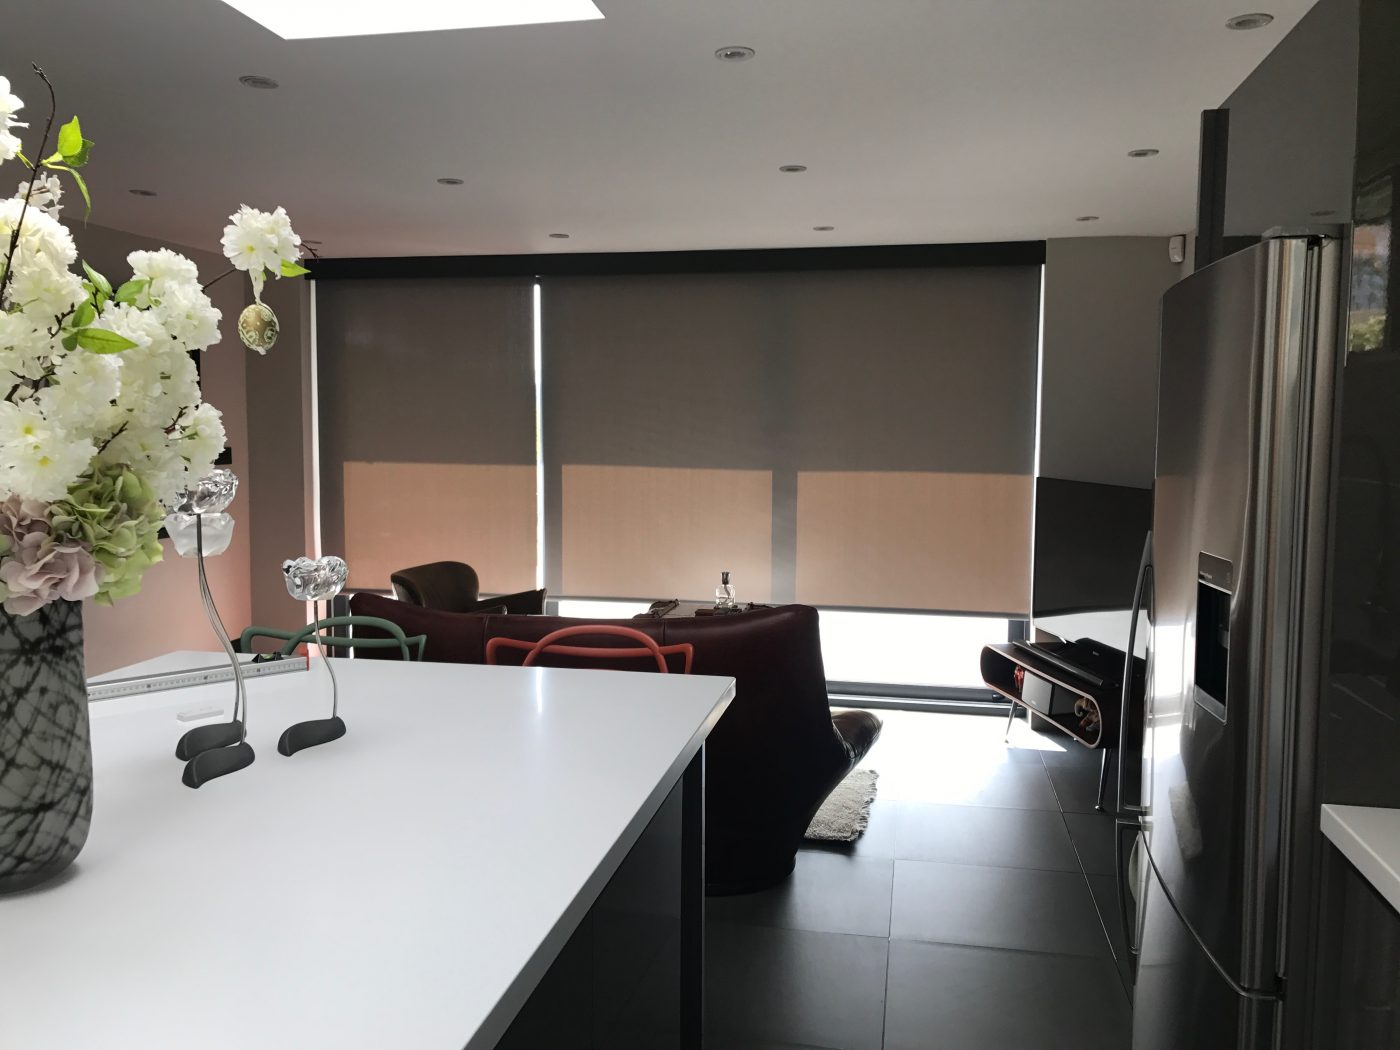 Electric Blinds for Bi-Fold Doors - 3 Panels - The Electric Blind Company